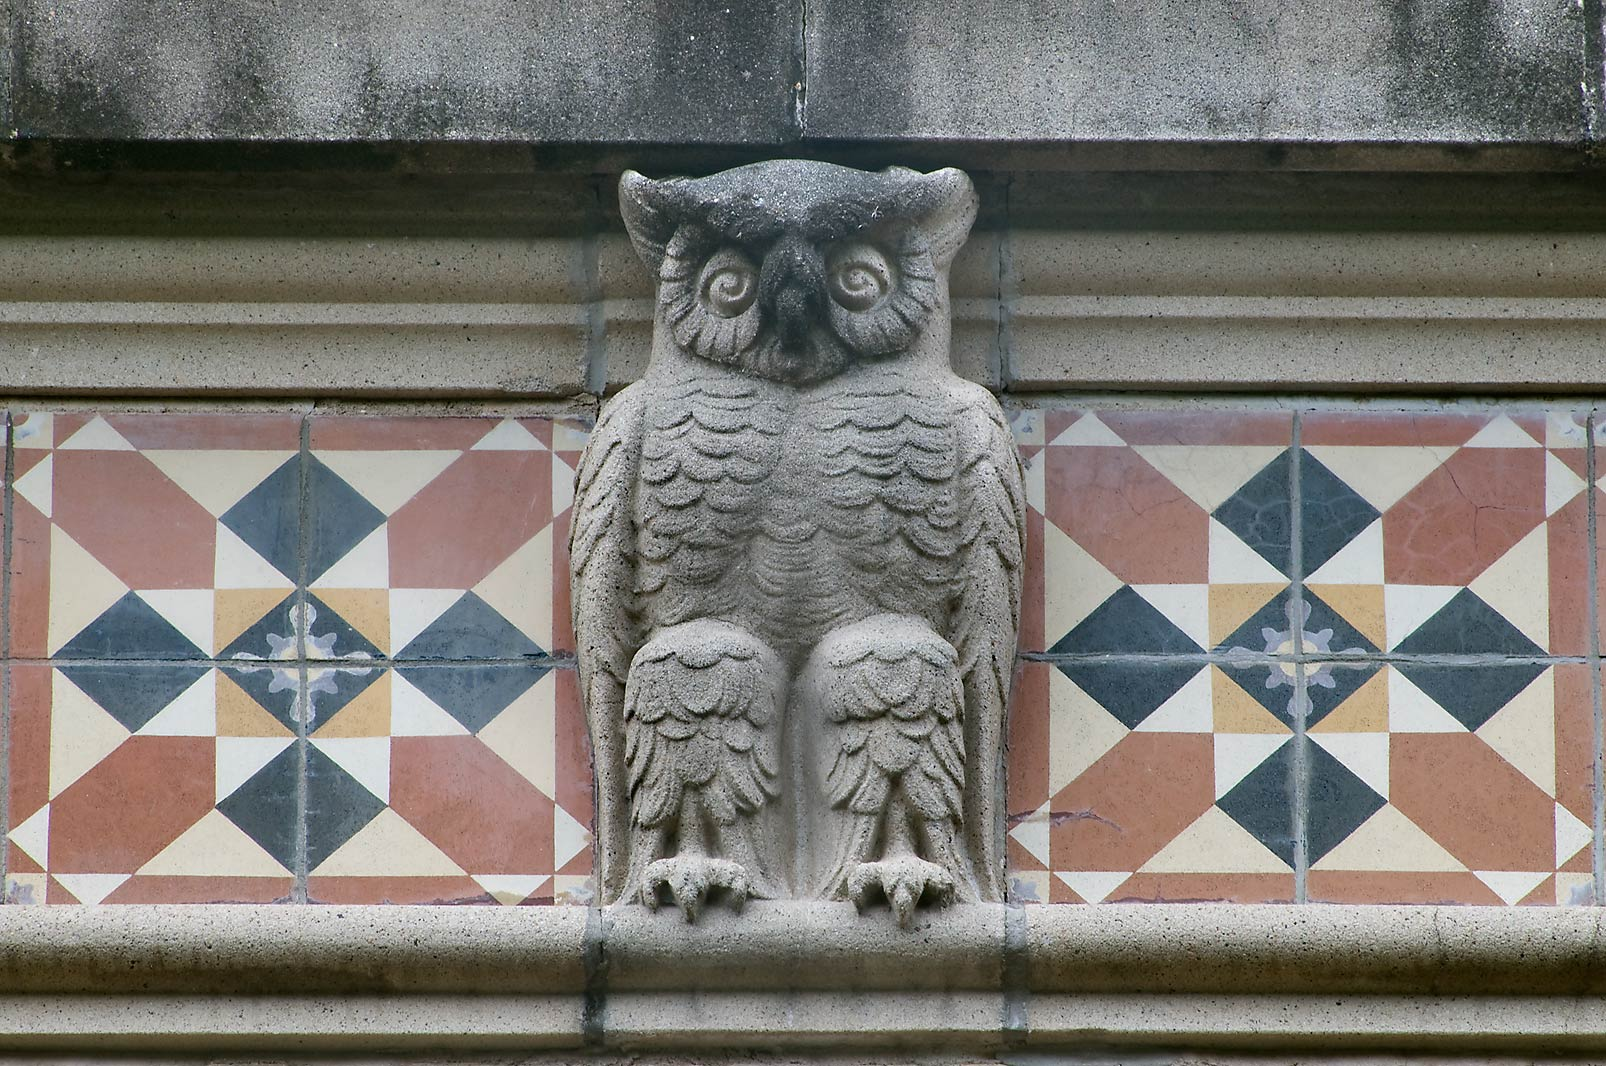 Owl figure at cornice of Agricultural Engineering...M University. College Station, Texas